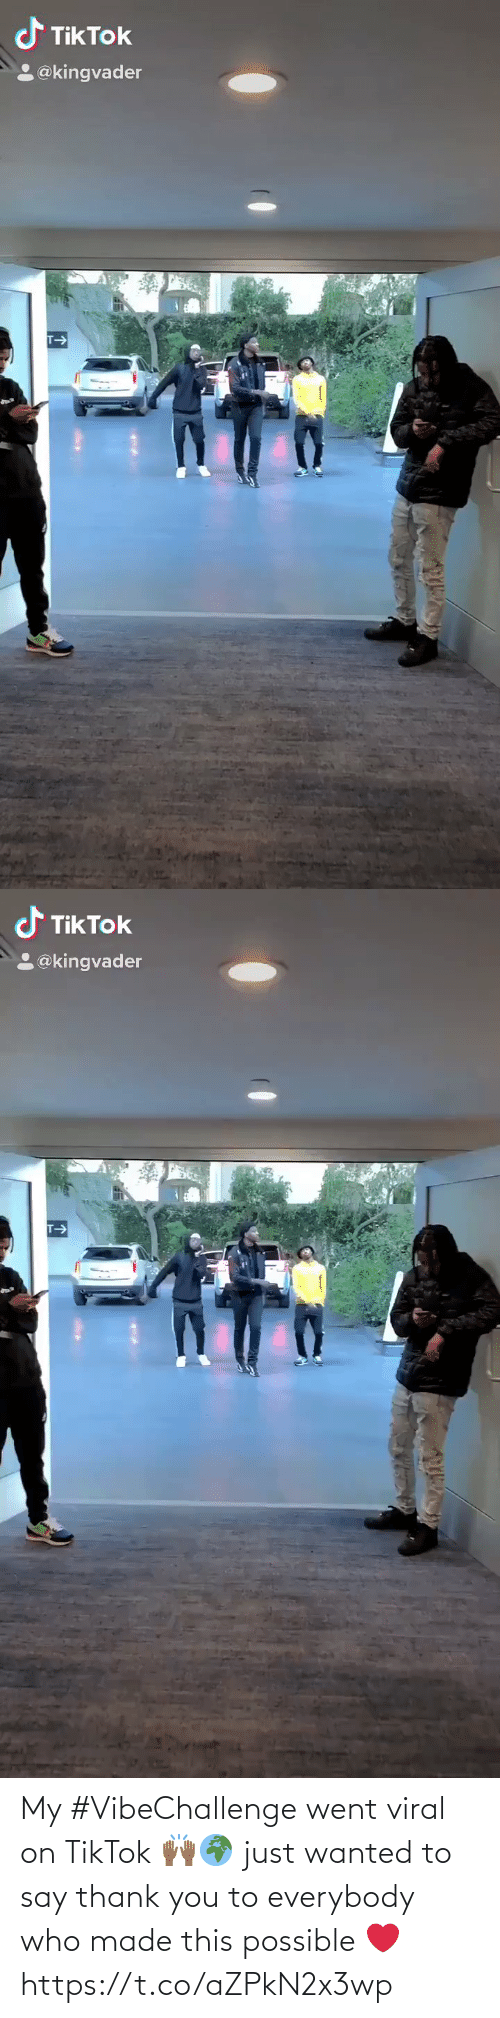 Everybody: My #VibeChallenge went viral on TikTok 🙌🏾🌍 just wanted to say thank you to everybody who made this possible ❤️ https://t.co/aZPkN2x3wp